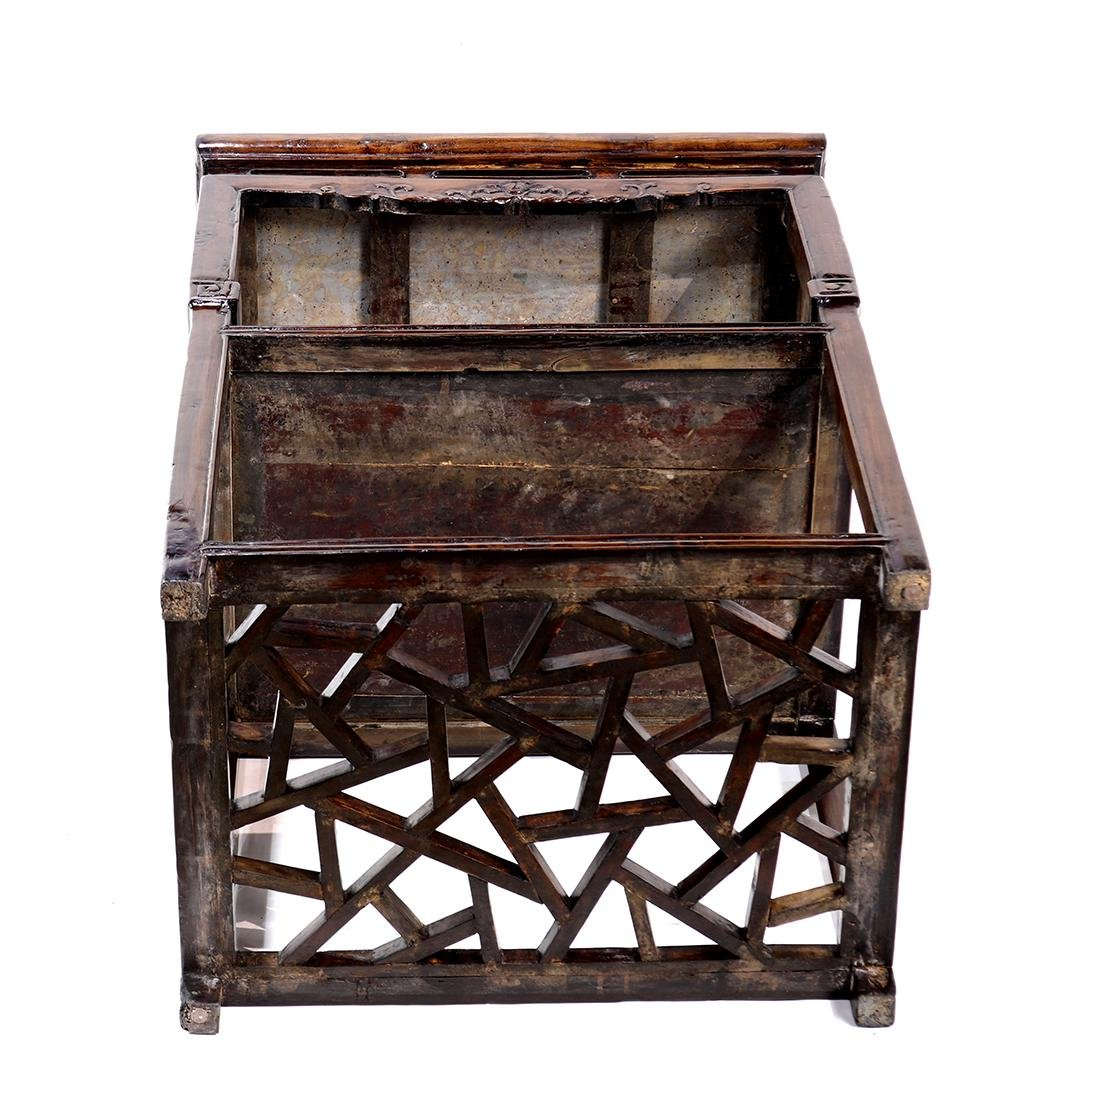 Chinese Marble Inset Tiered Stand - 4